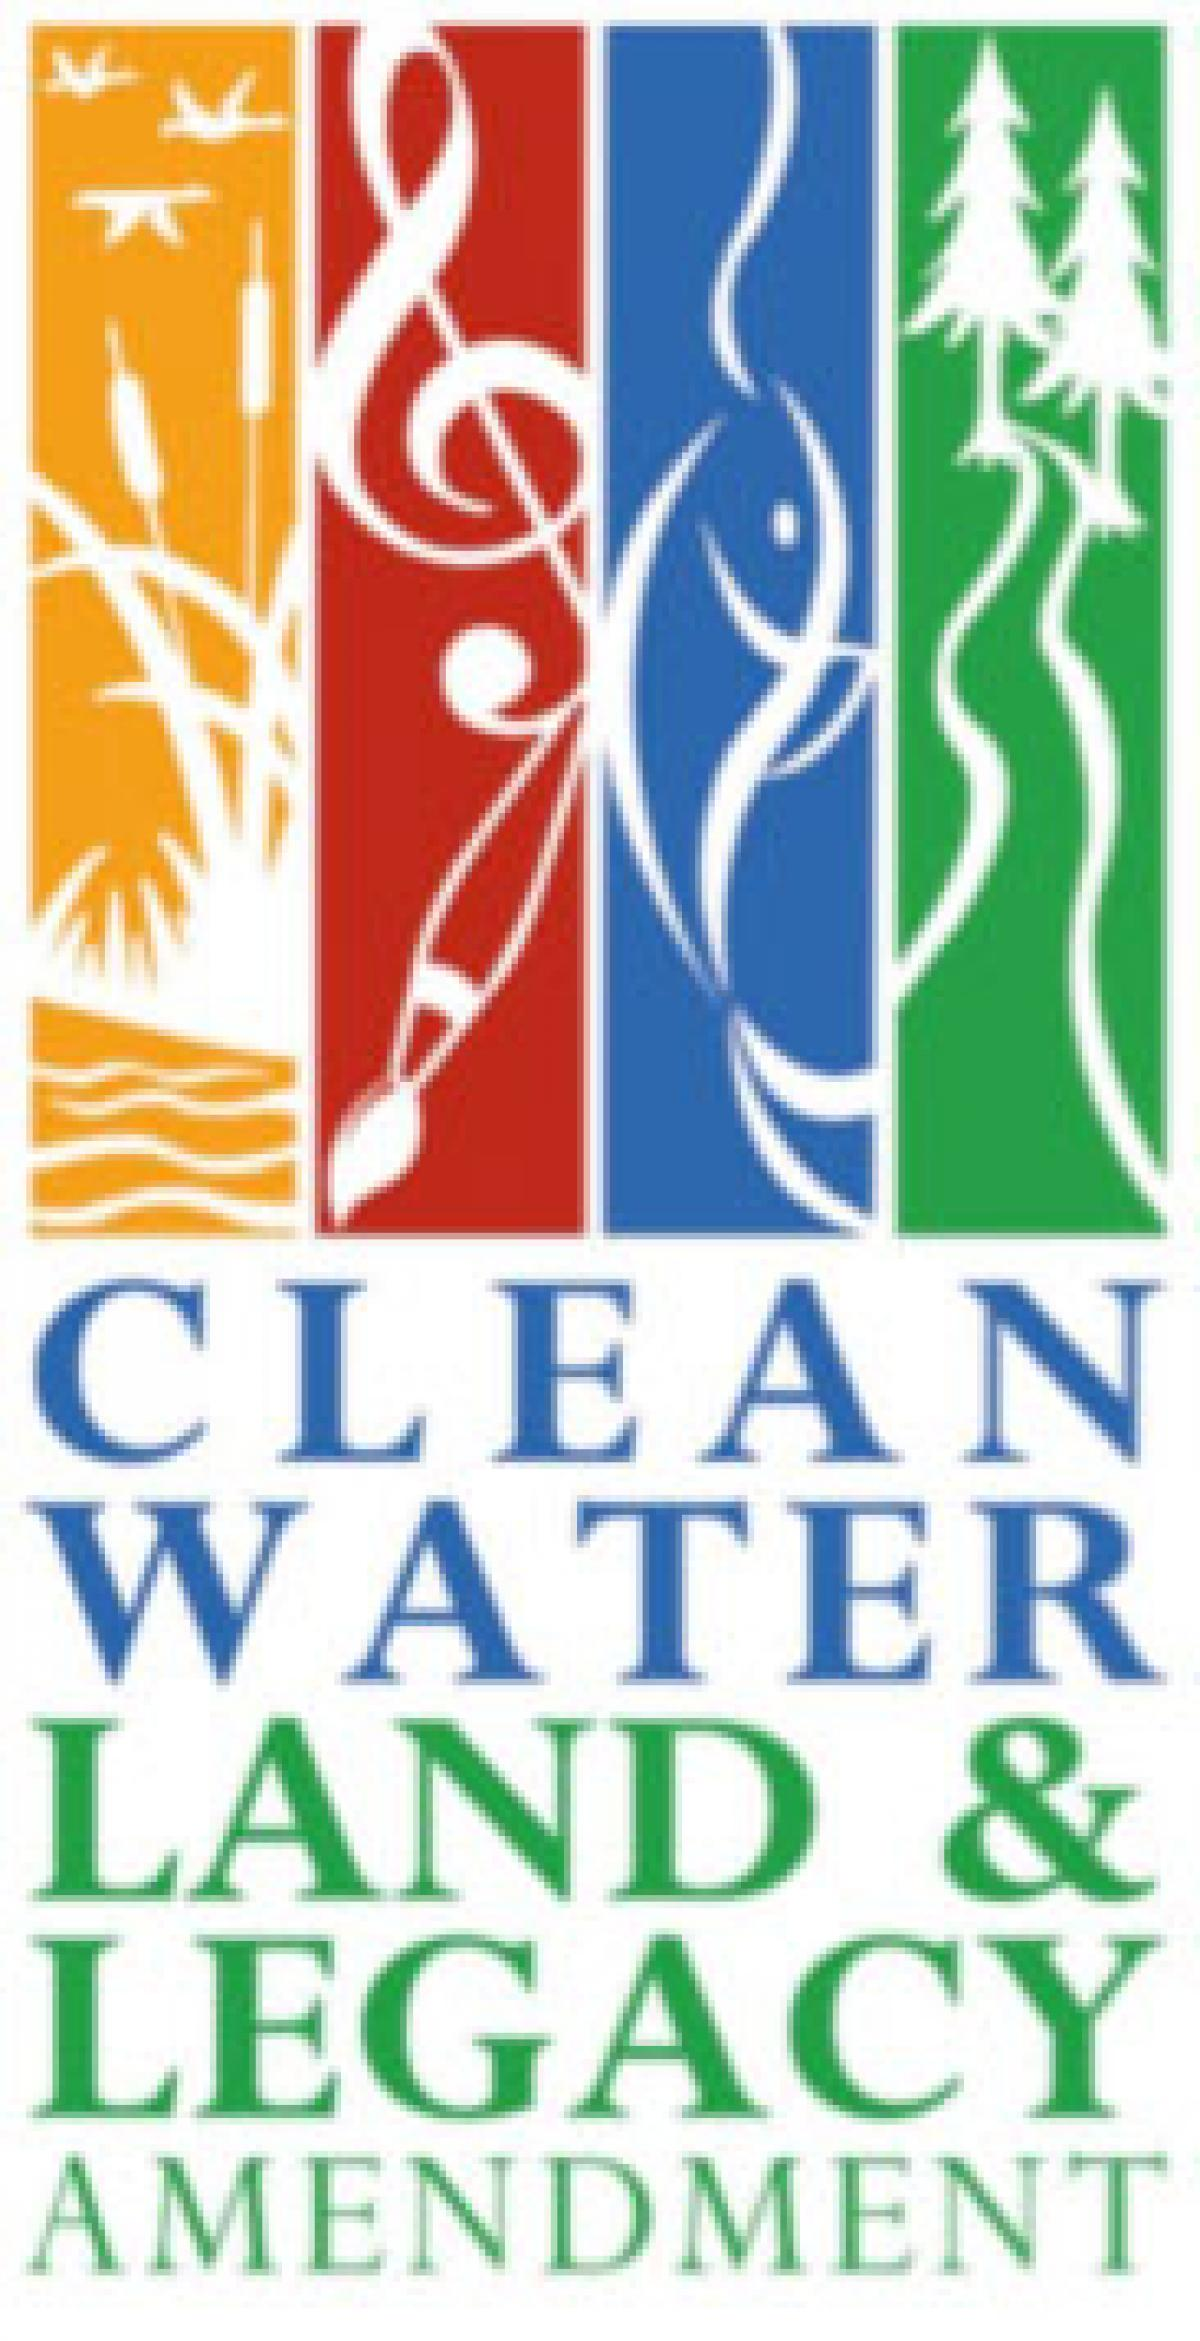 The logo for the Clean Water Land & Legacy Amendment